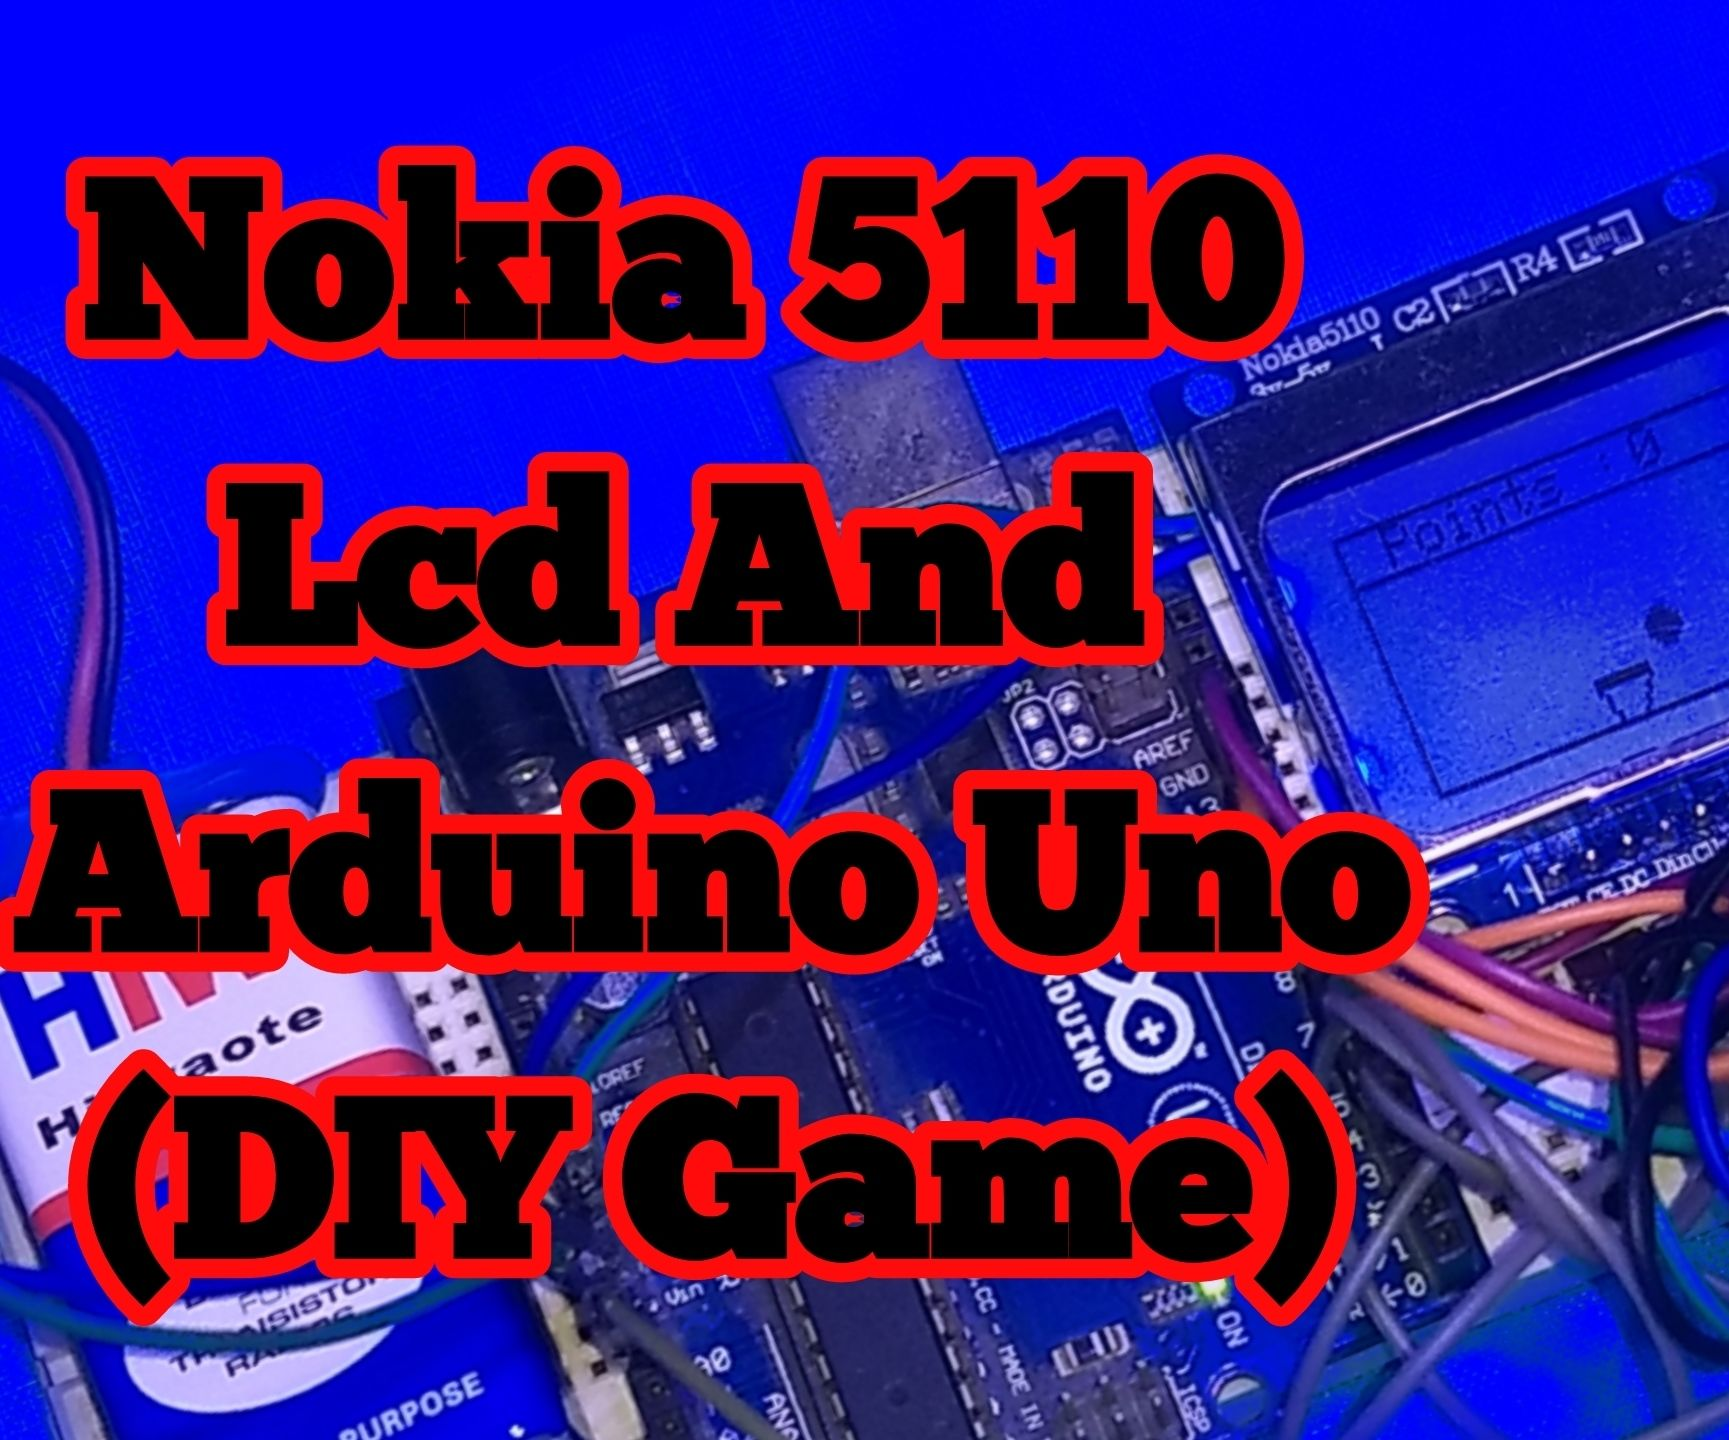 Diy Game Using Arduino and Nokia 5110 Lcd